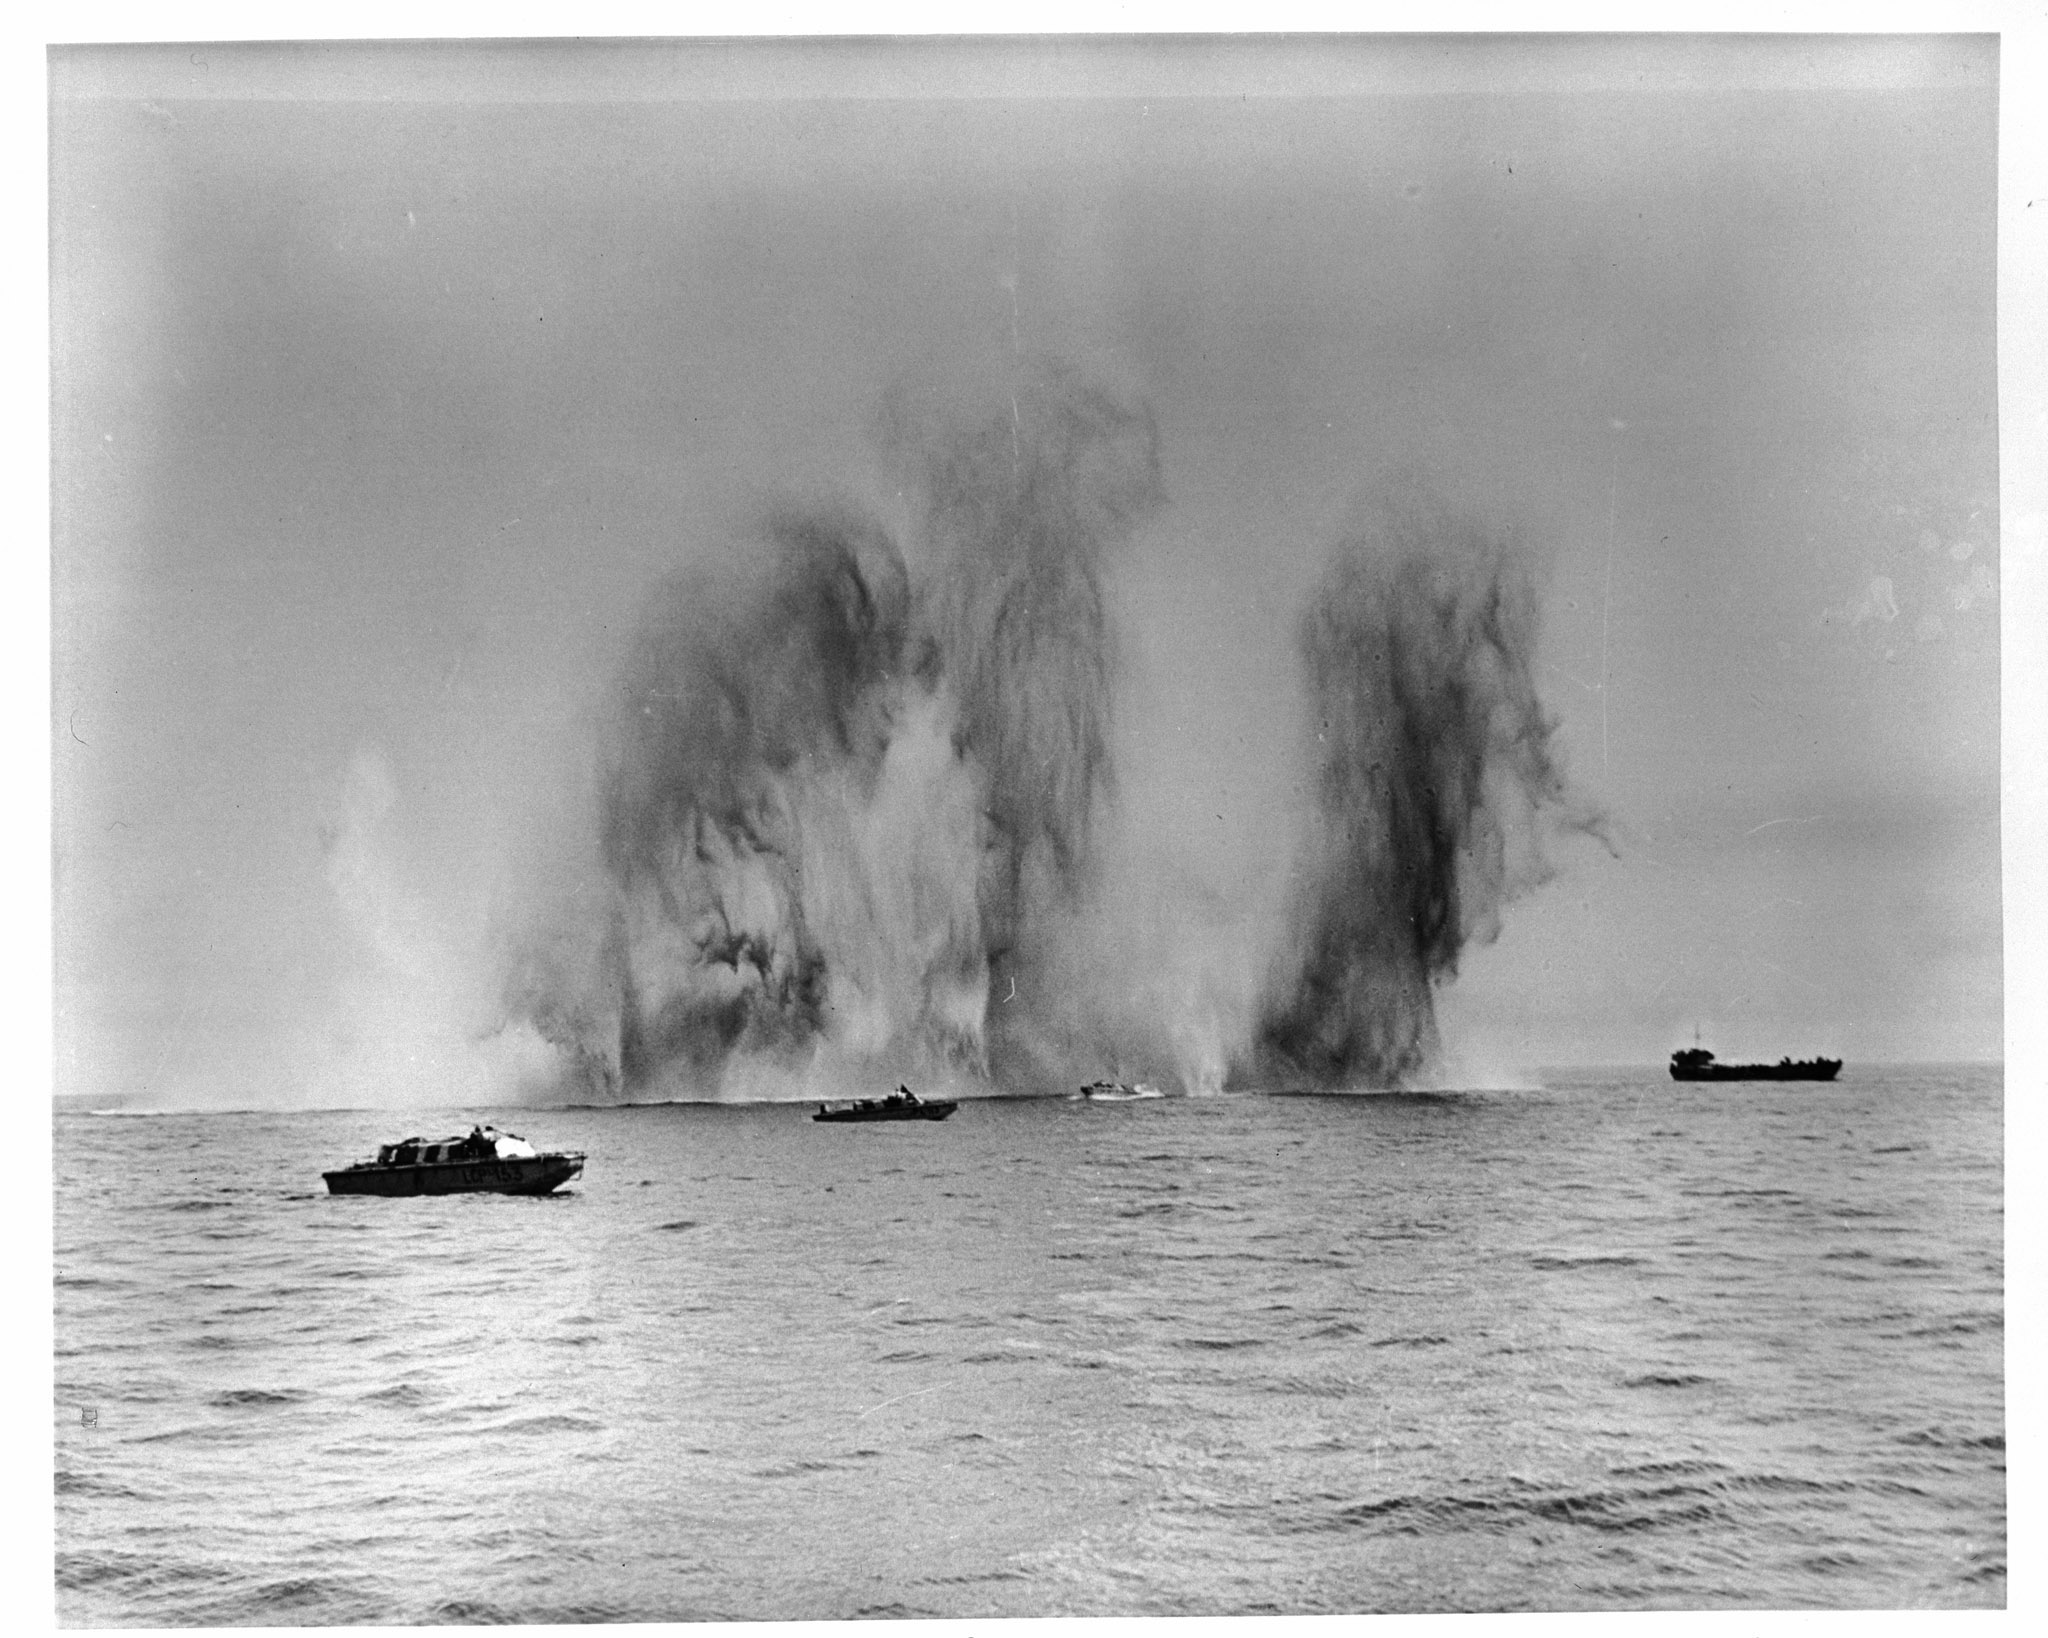 Canadians in landing craft off Dieppe underwent a terrific dive bombing barrage. This photograph, taken by an official Canadian military photographer who accompanied the raiding force, shows some near misses. PHOTO: DND Archives, Z-8471-6